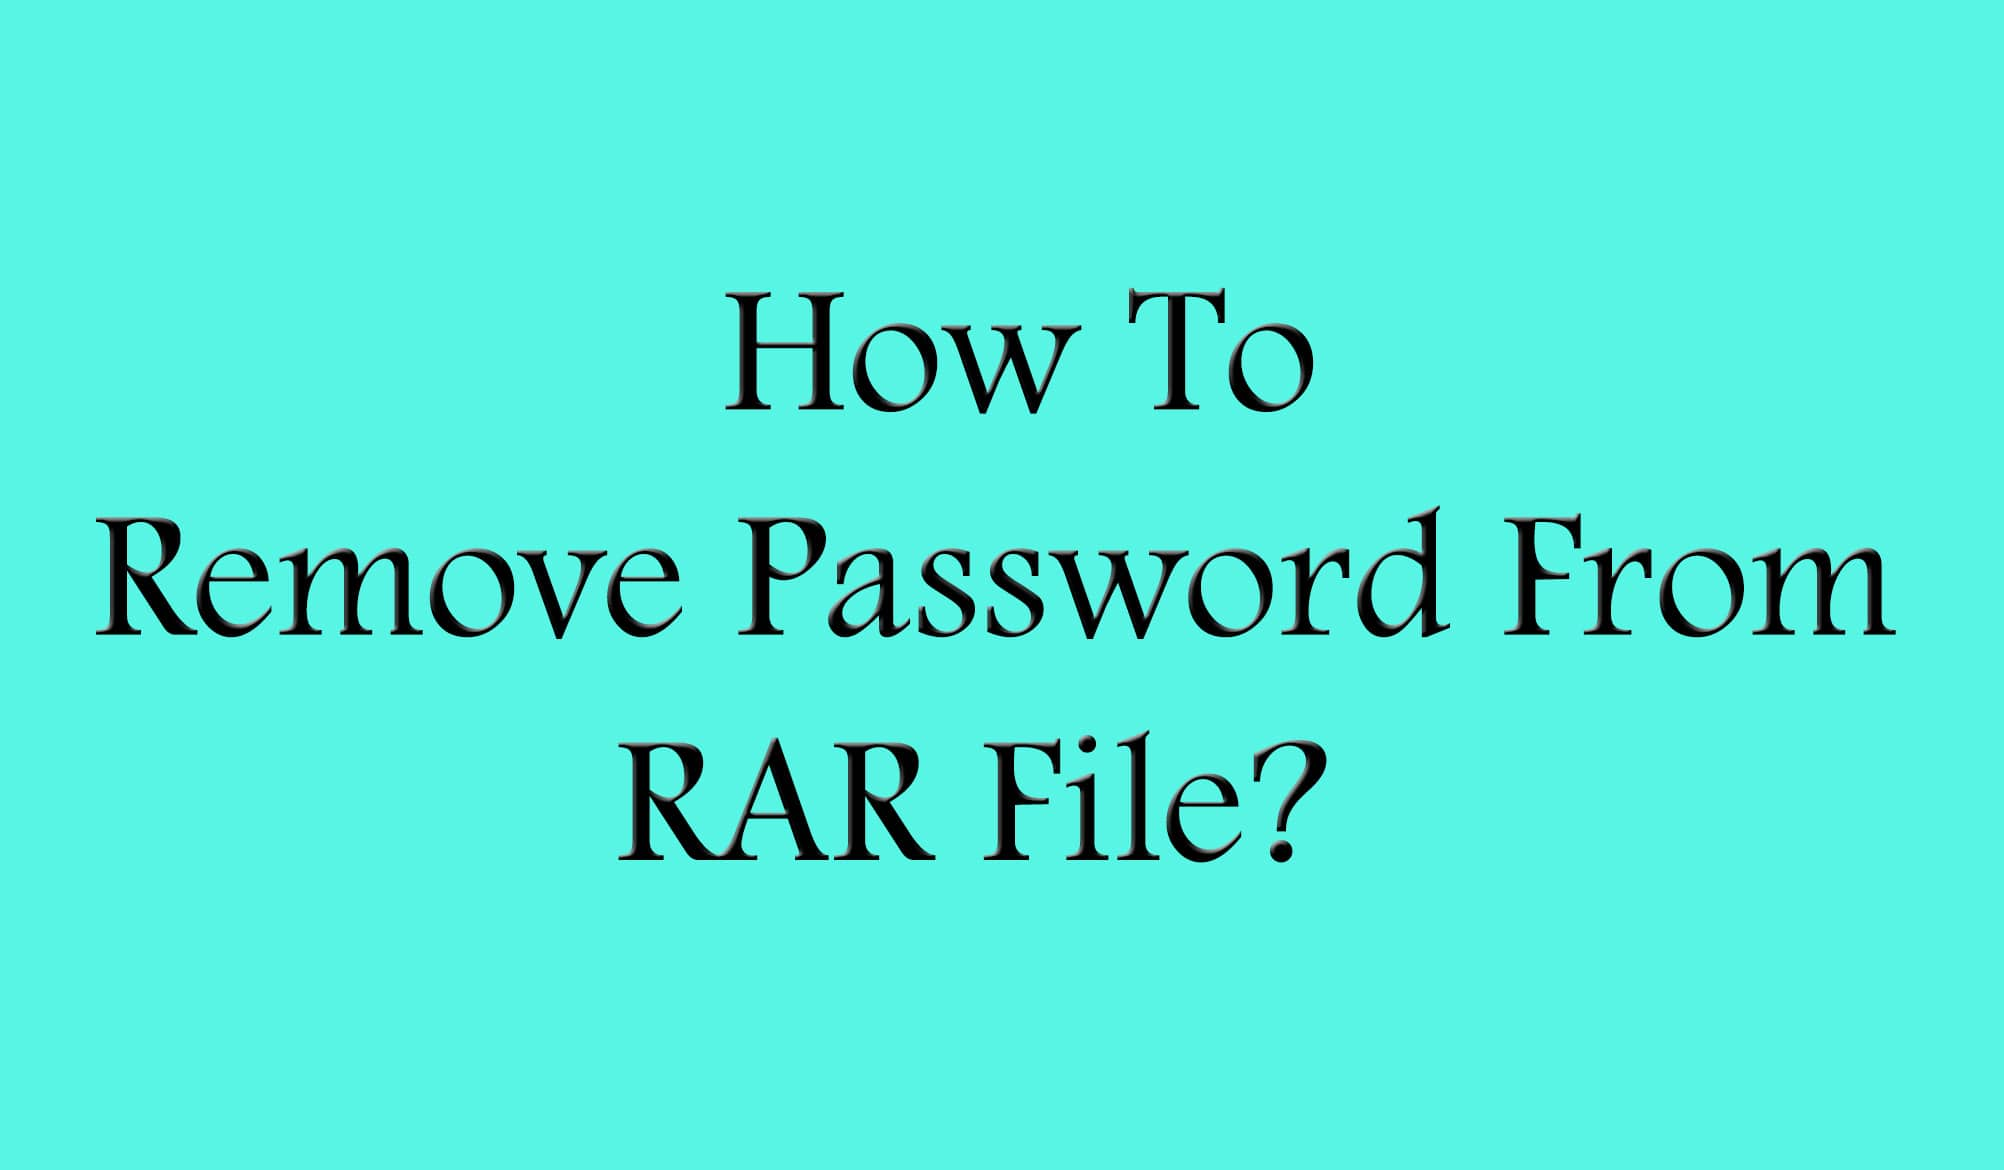 Remove Password From RAR File